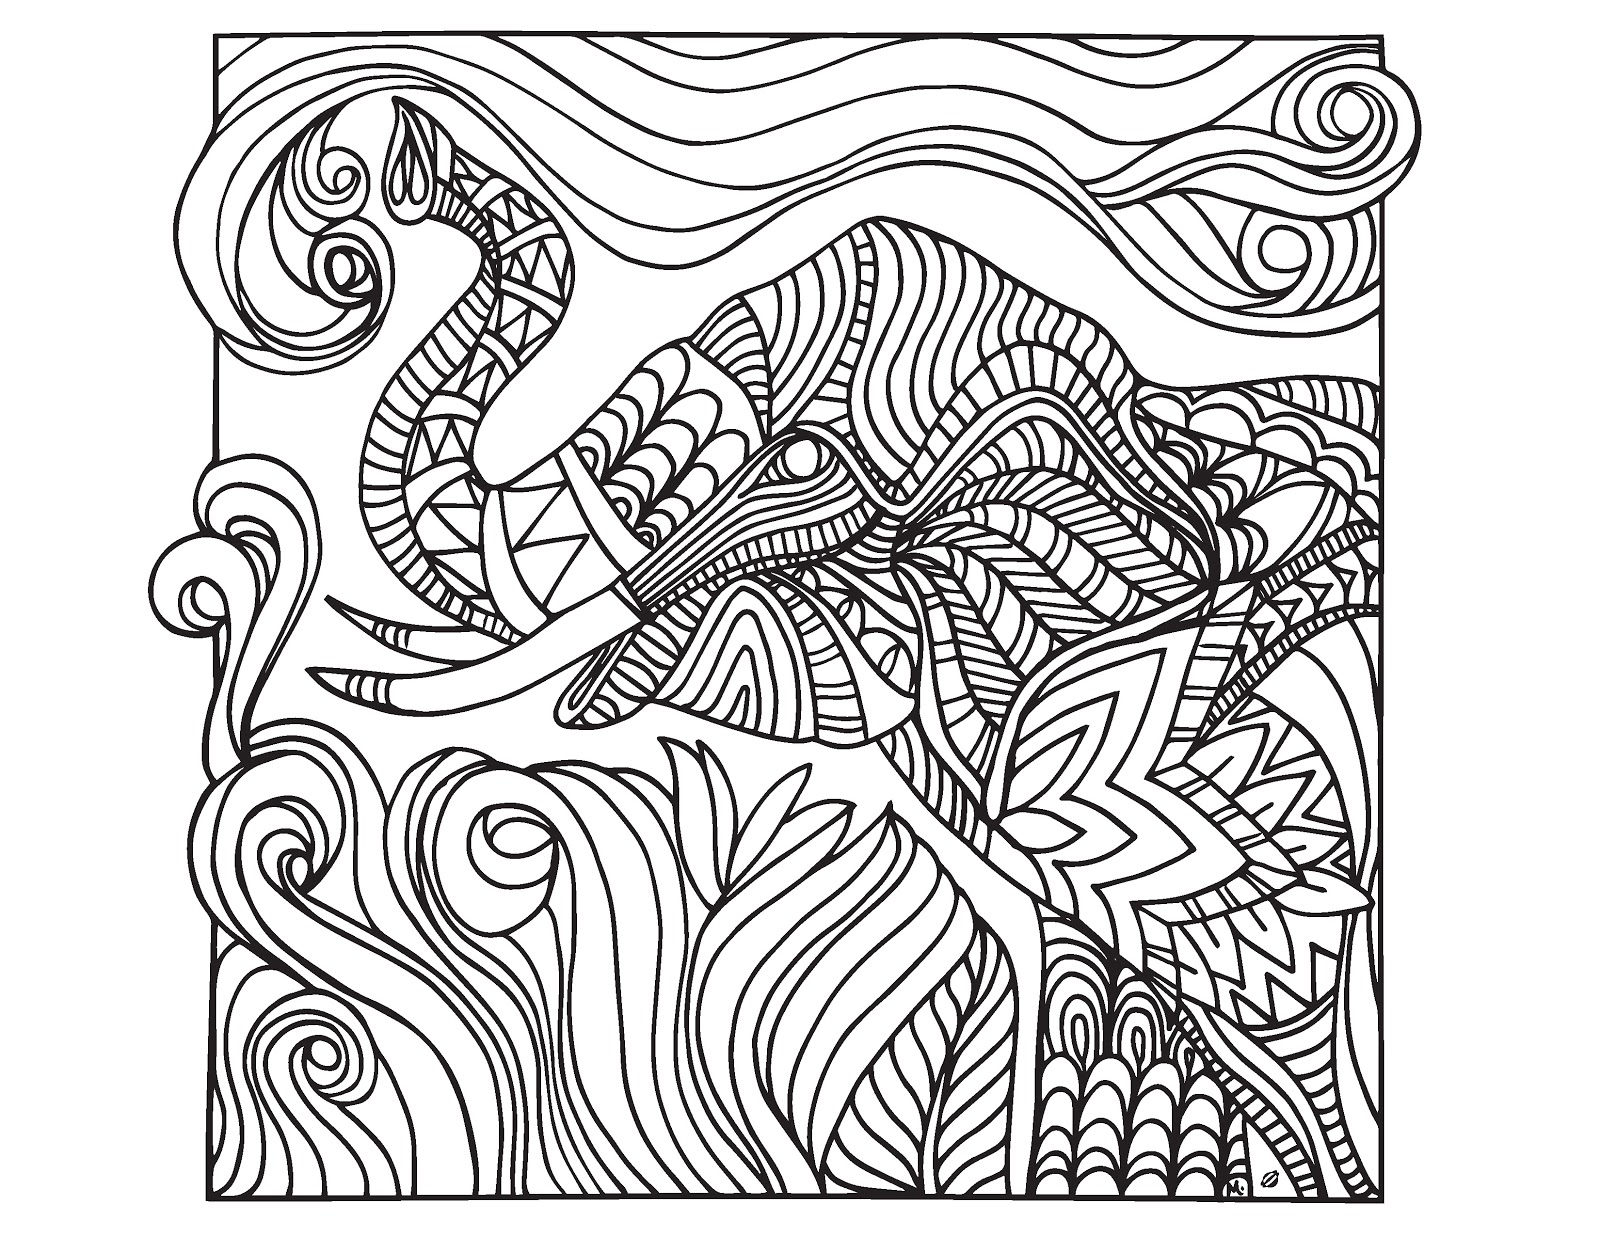 1600x1236 Coloring Pages For Grown Ups Erf